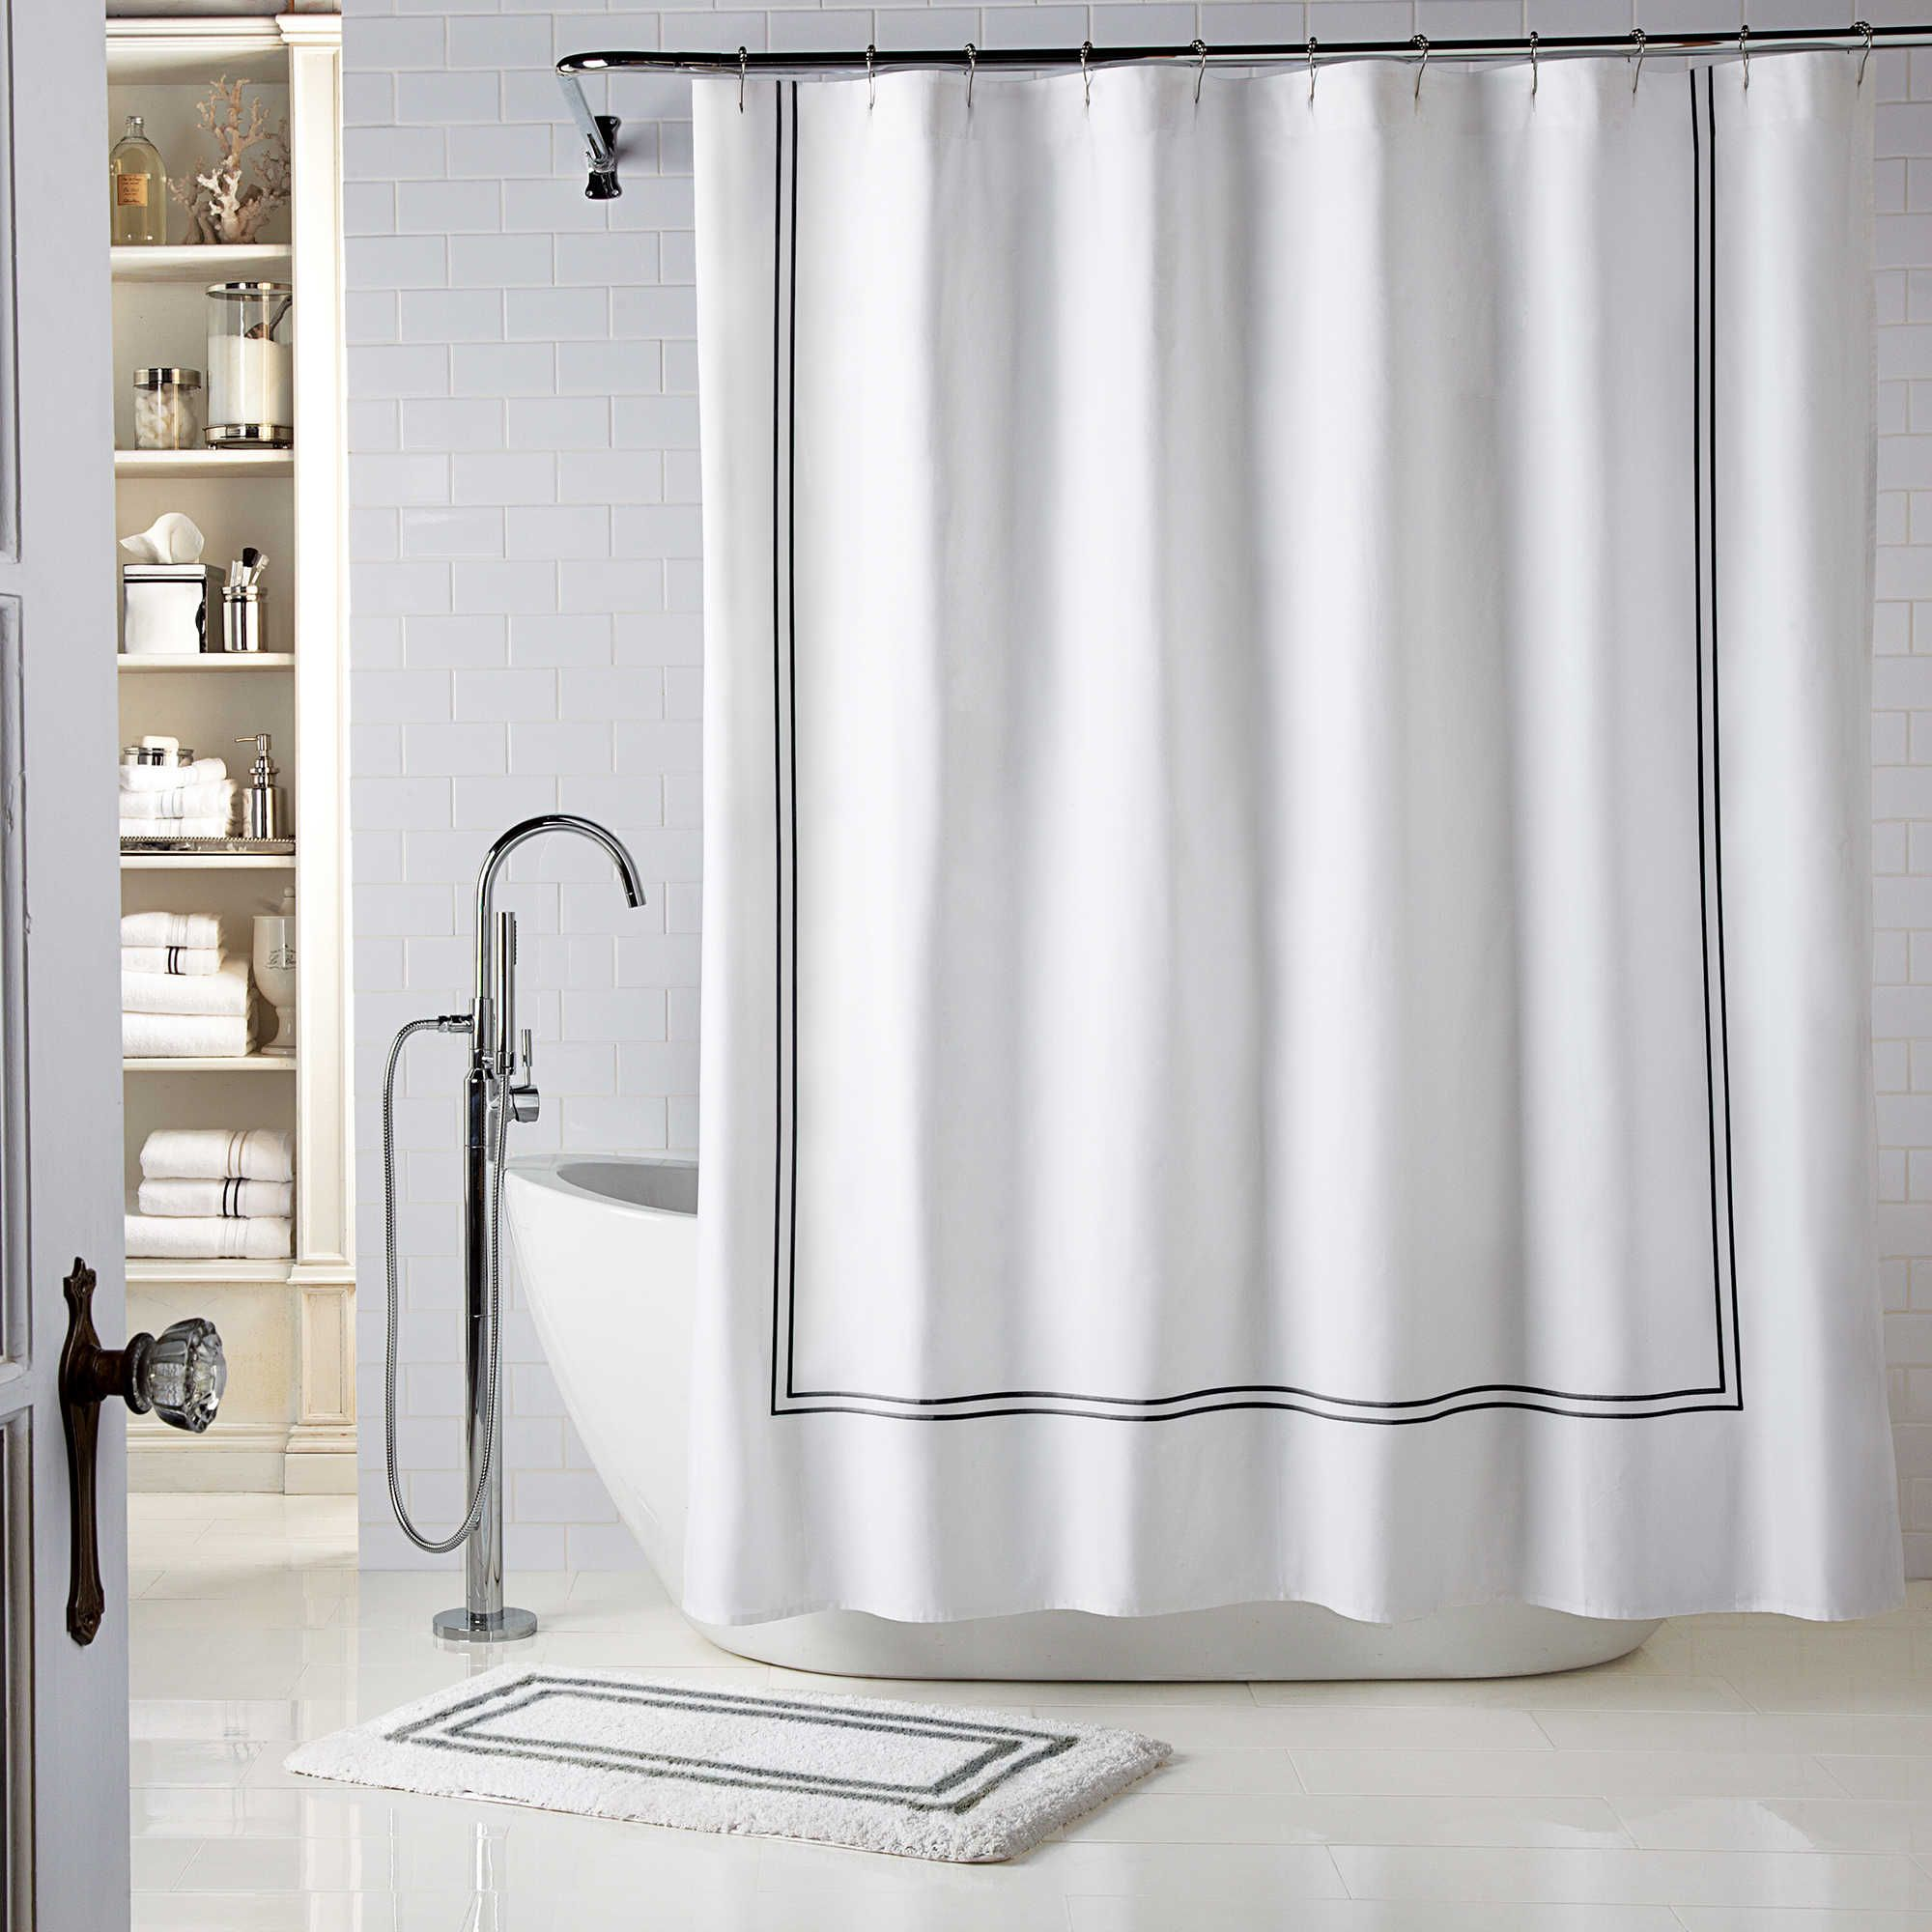 with double rods showe curtain ideas stall shower bathroom curved exciting decor rod strong black tension